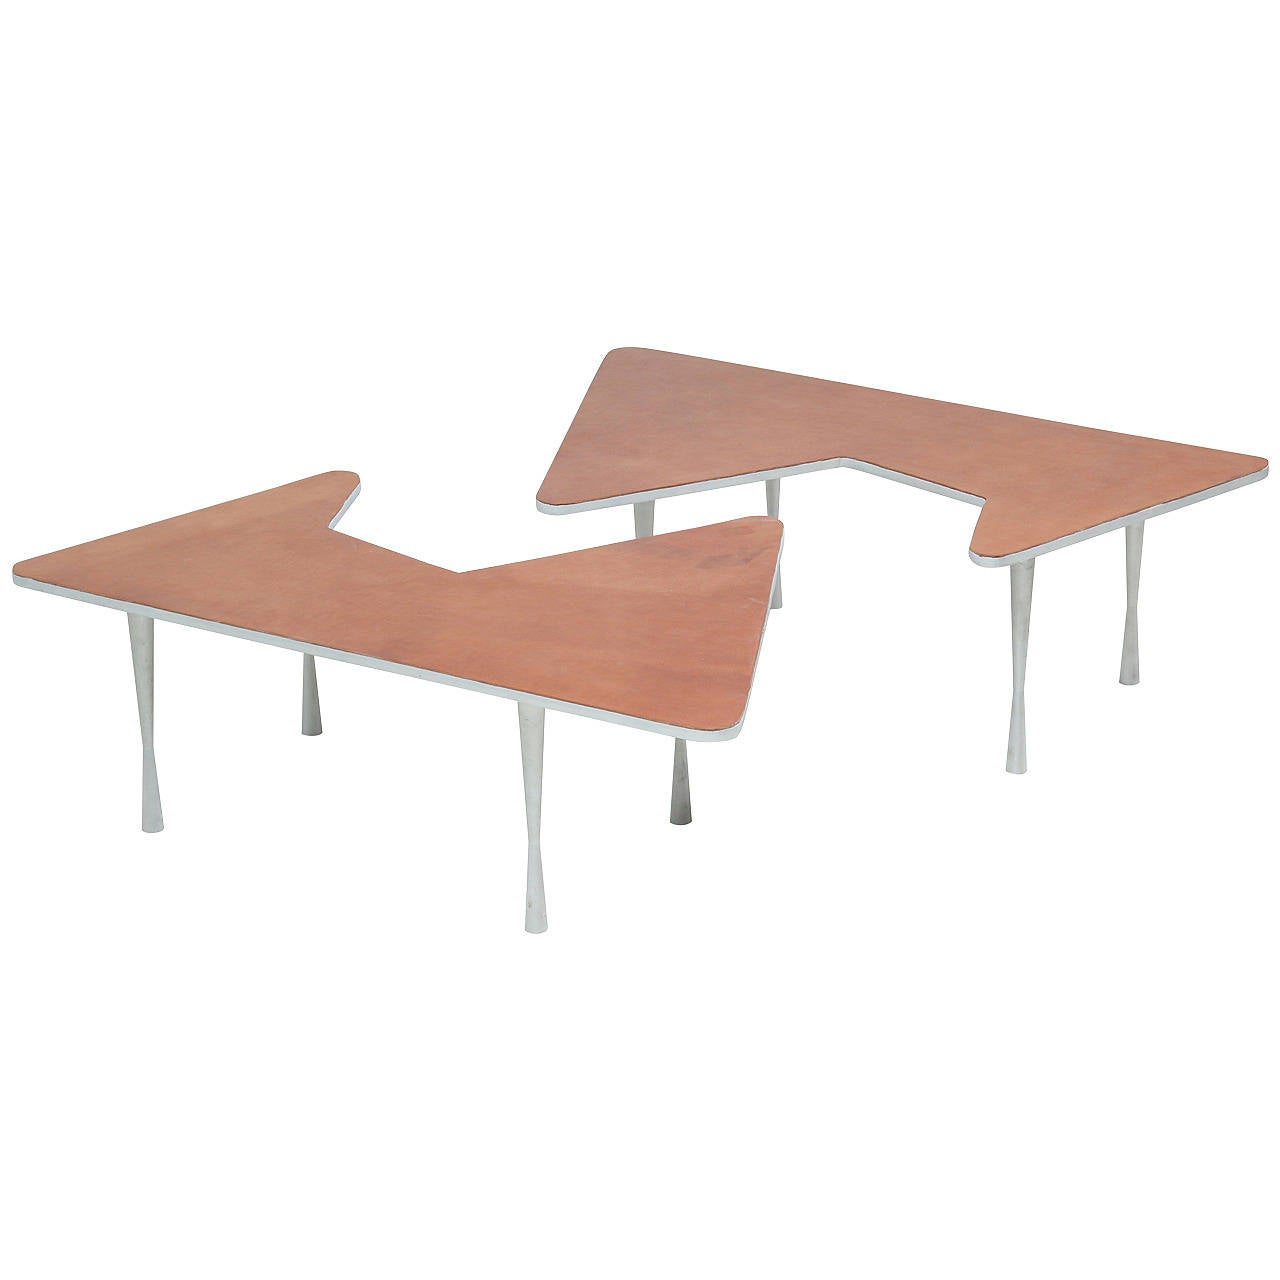 Free Form Aluminum Coffee Tables With Leather Top For Sale At 1stdibs